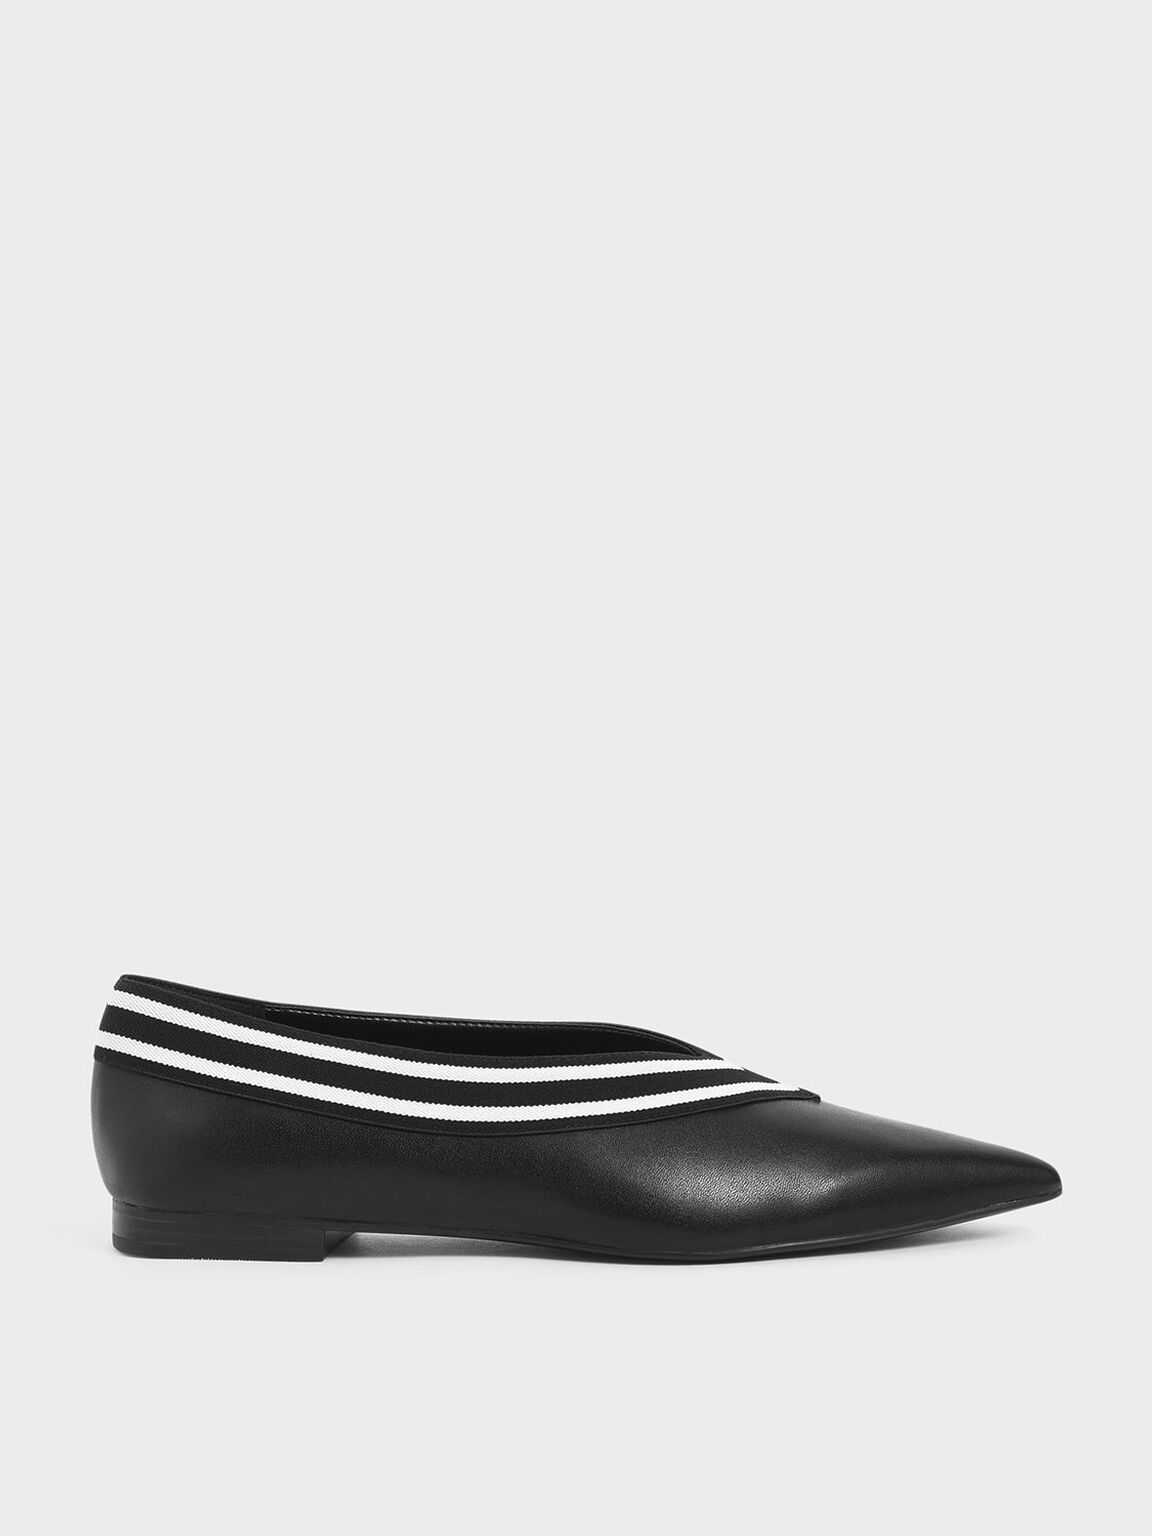 Striped Trim Ballerina Flats, Black, hi-res